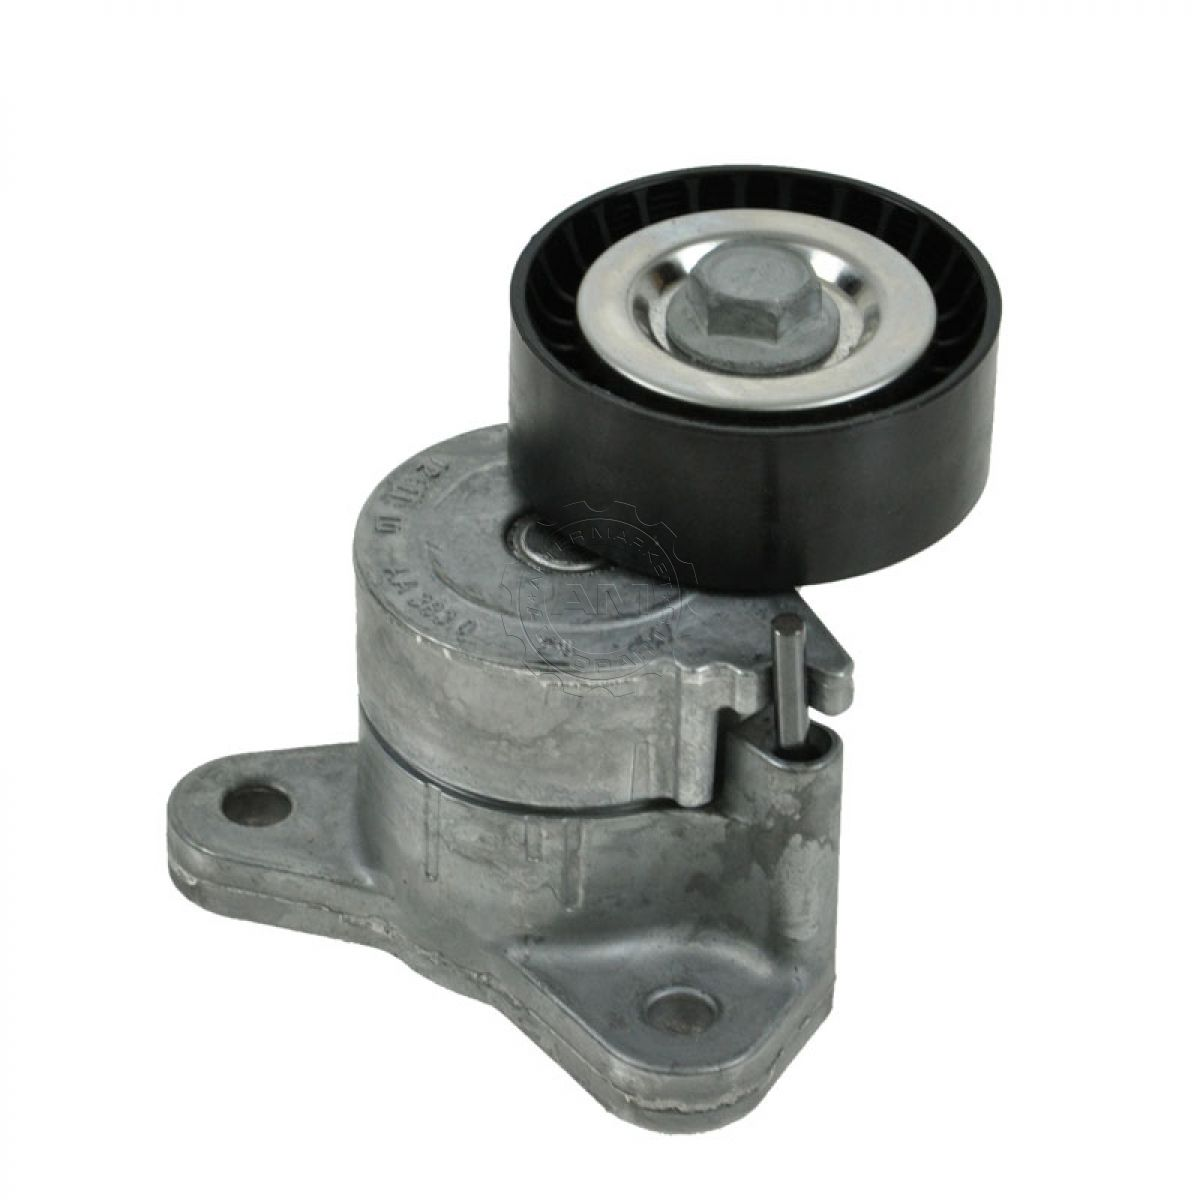 hight resolution of serpentine serp belt tensioner with pulley wheel for chrysler dodge jeep